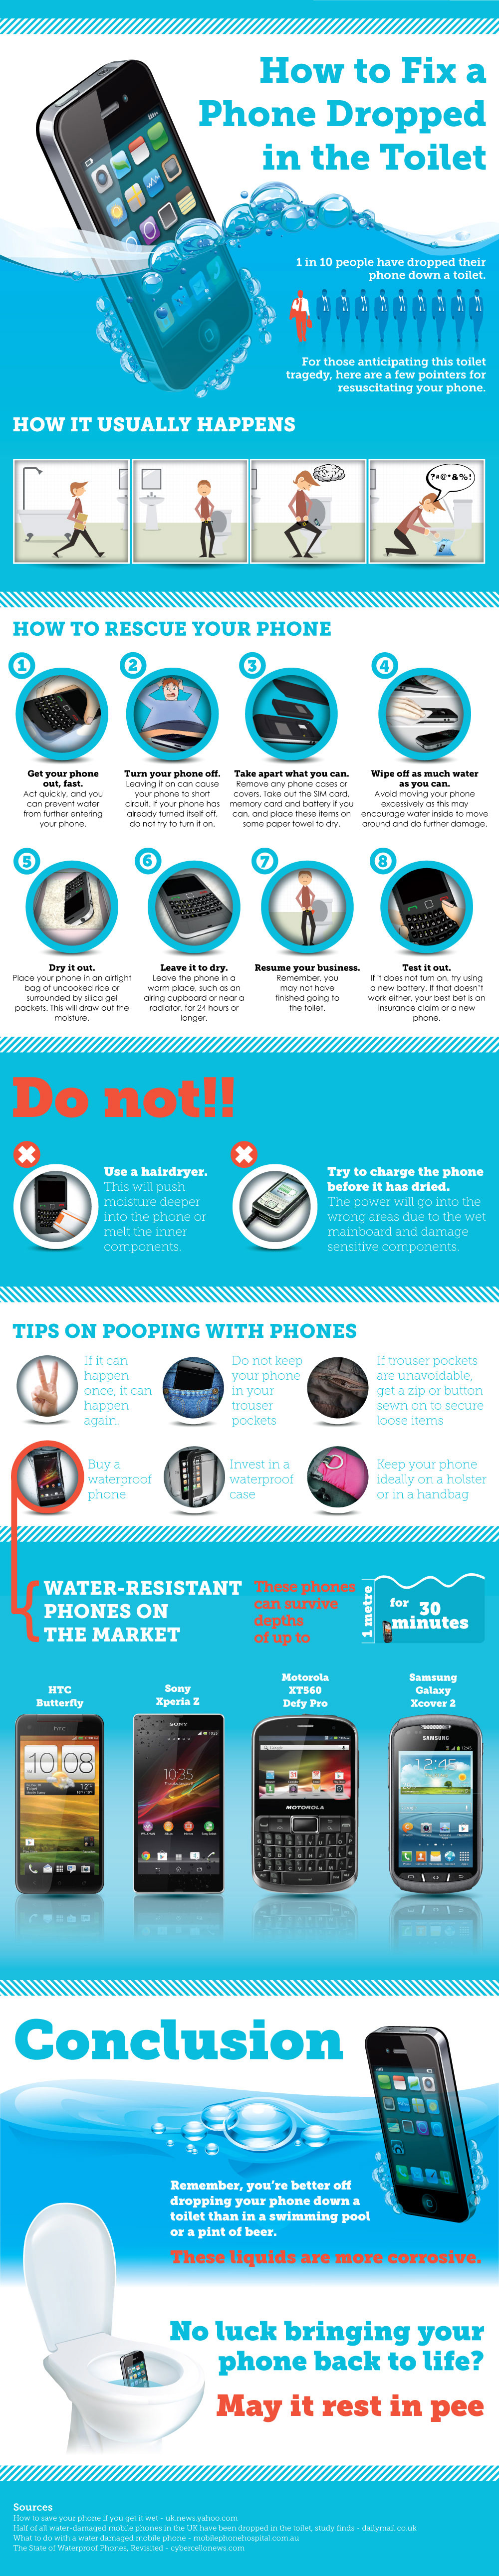 How to Fix a Phone Dropped in the Toilet